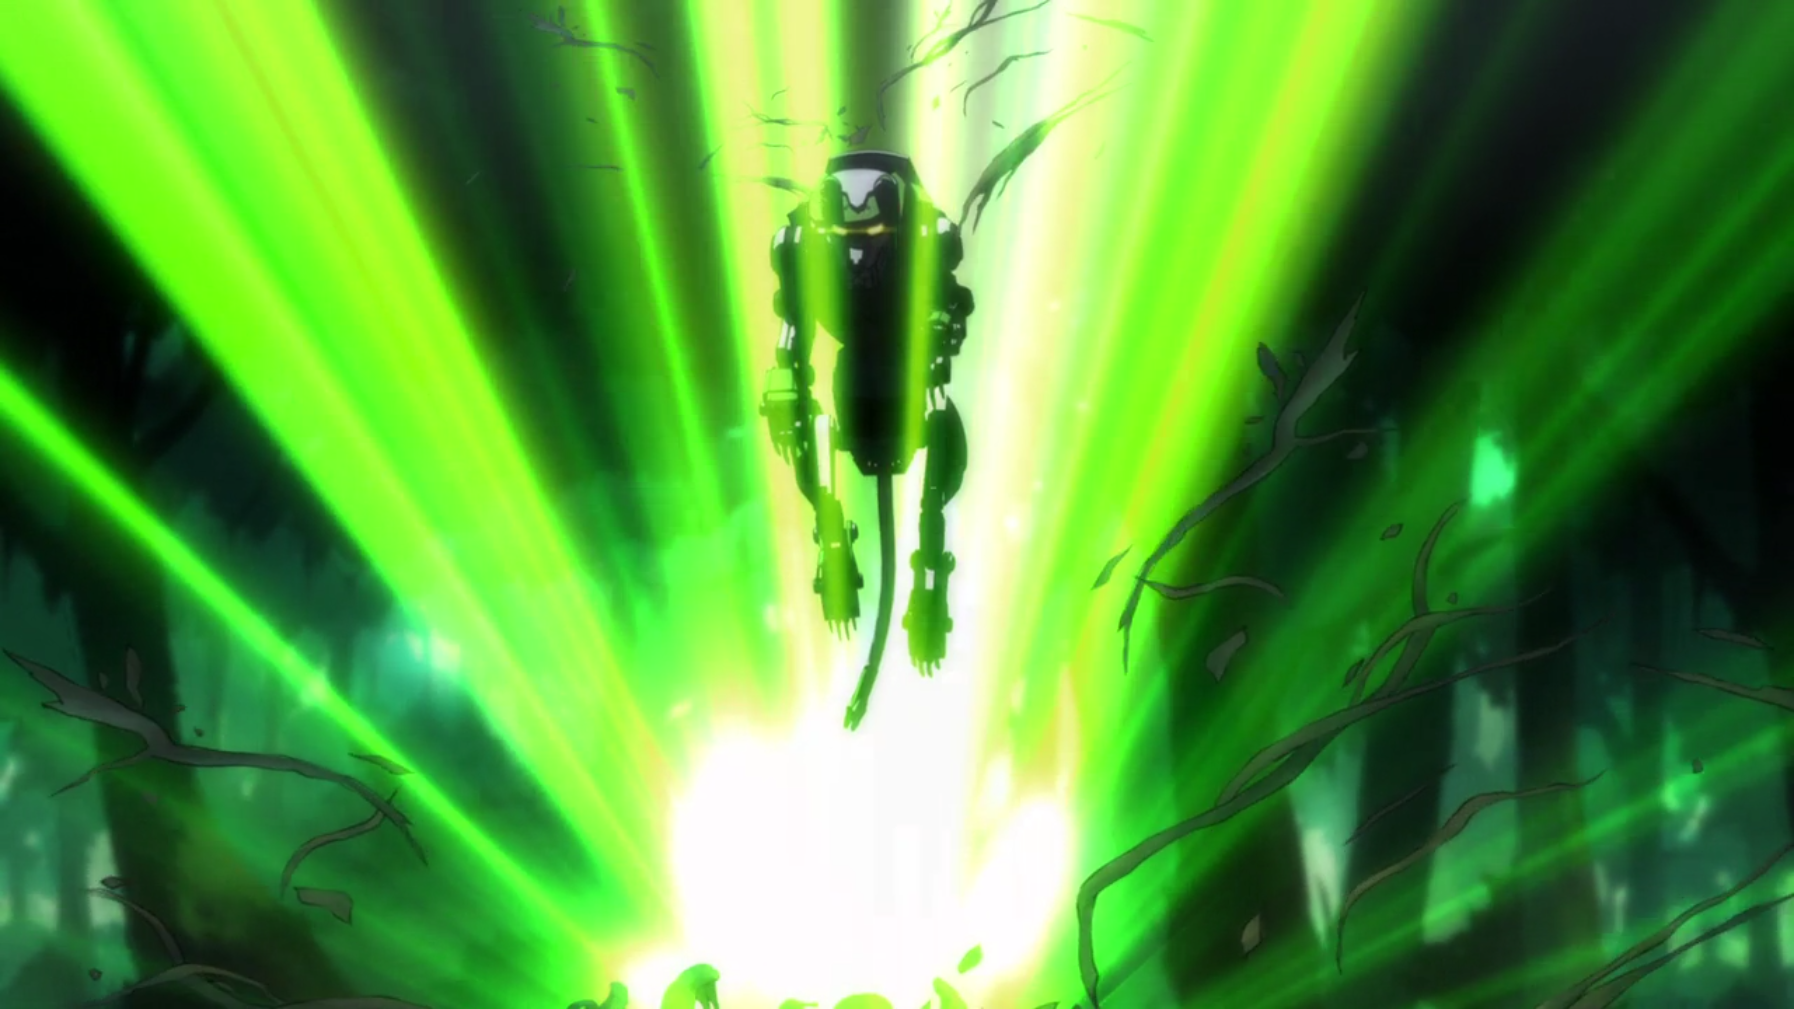 green lion emerges from its ancient cave like tree from voltron